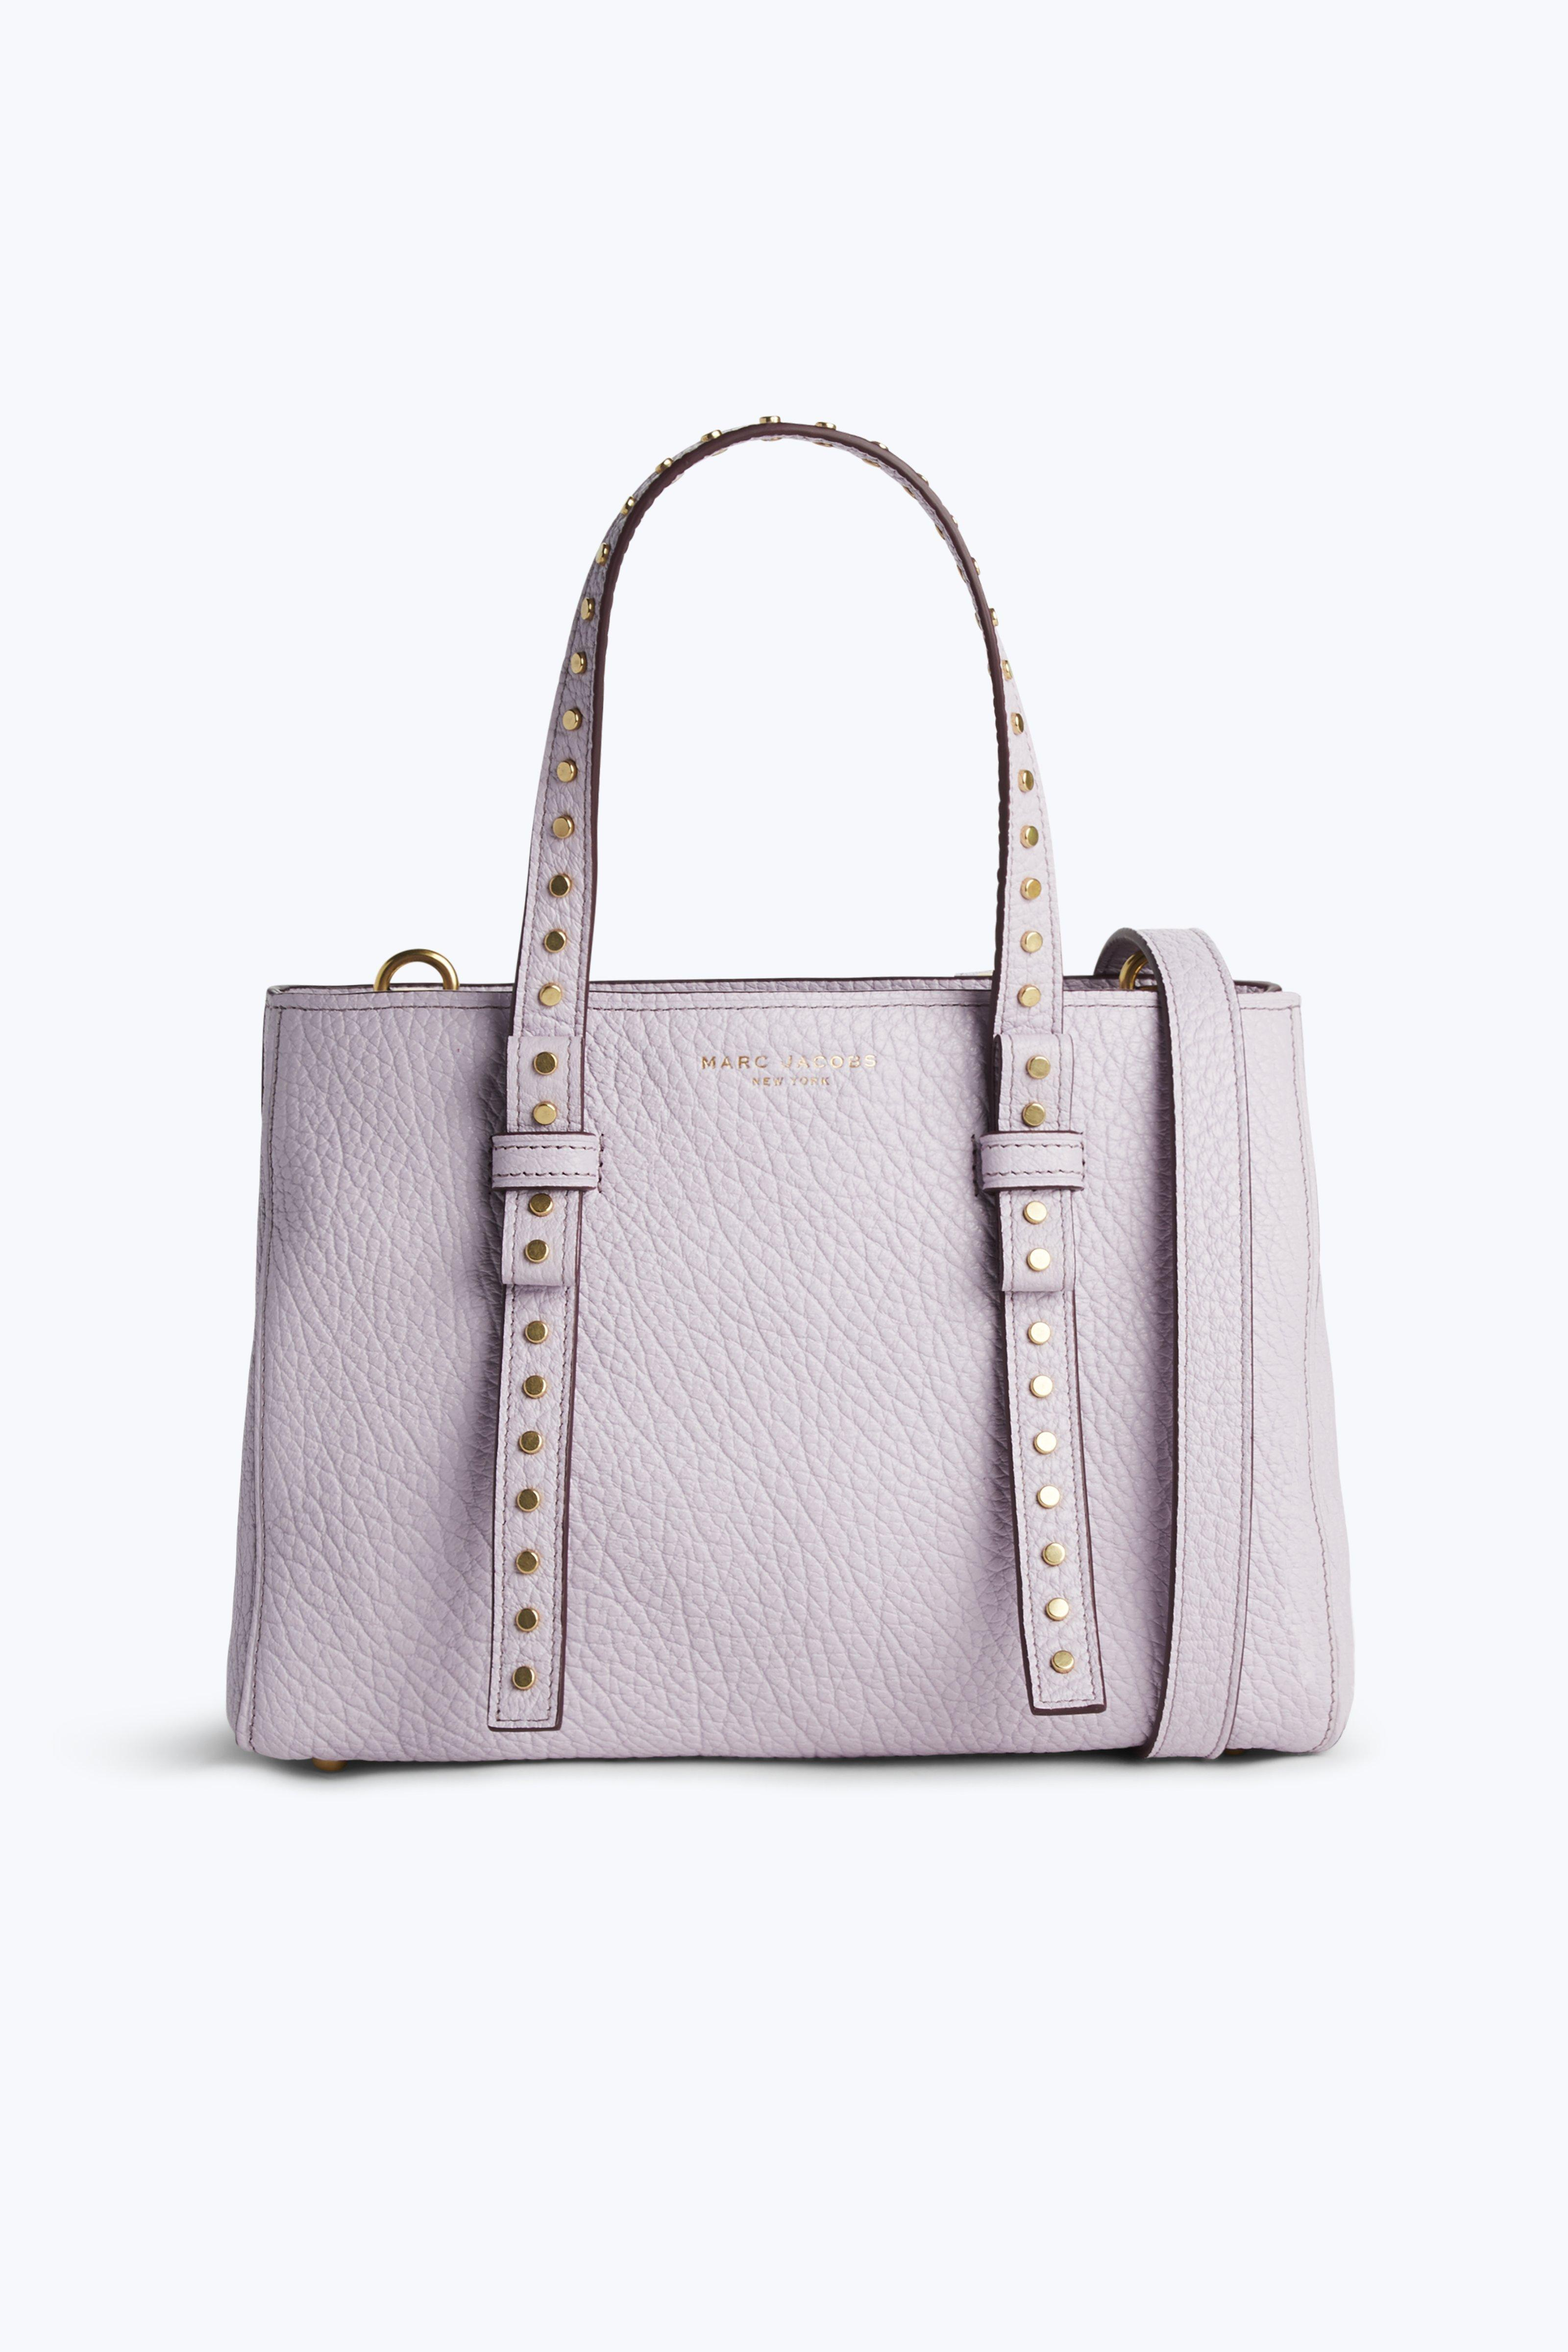 Marc Jacobs Mini T In Pale Lilac